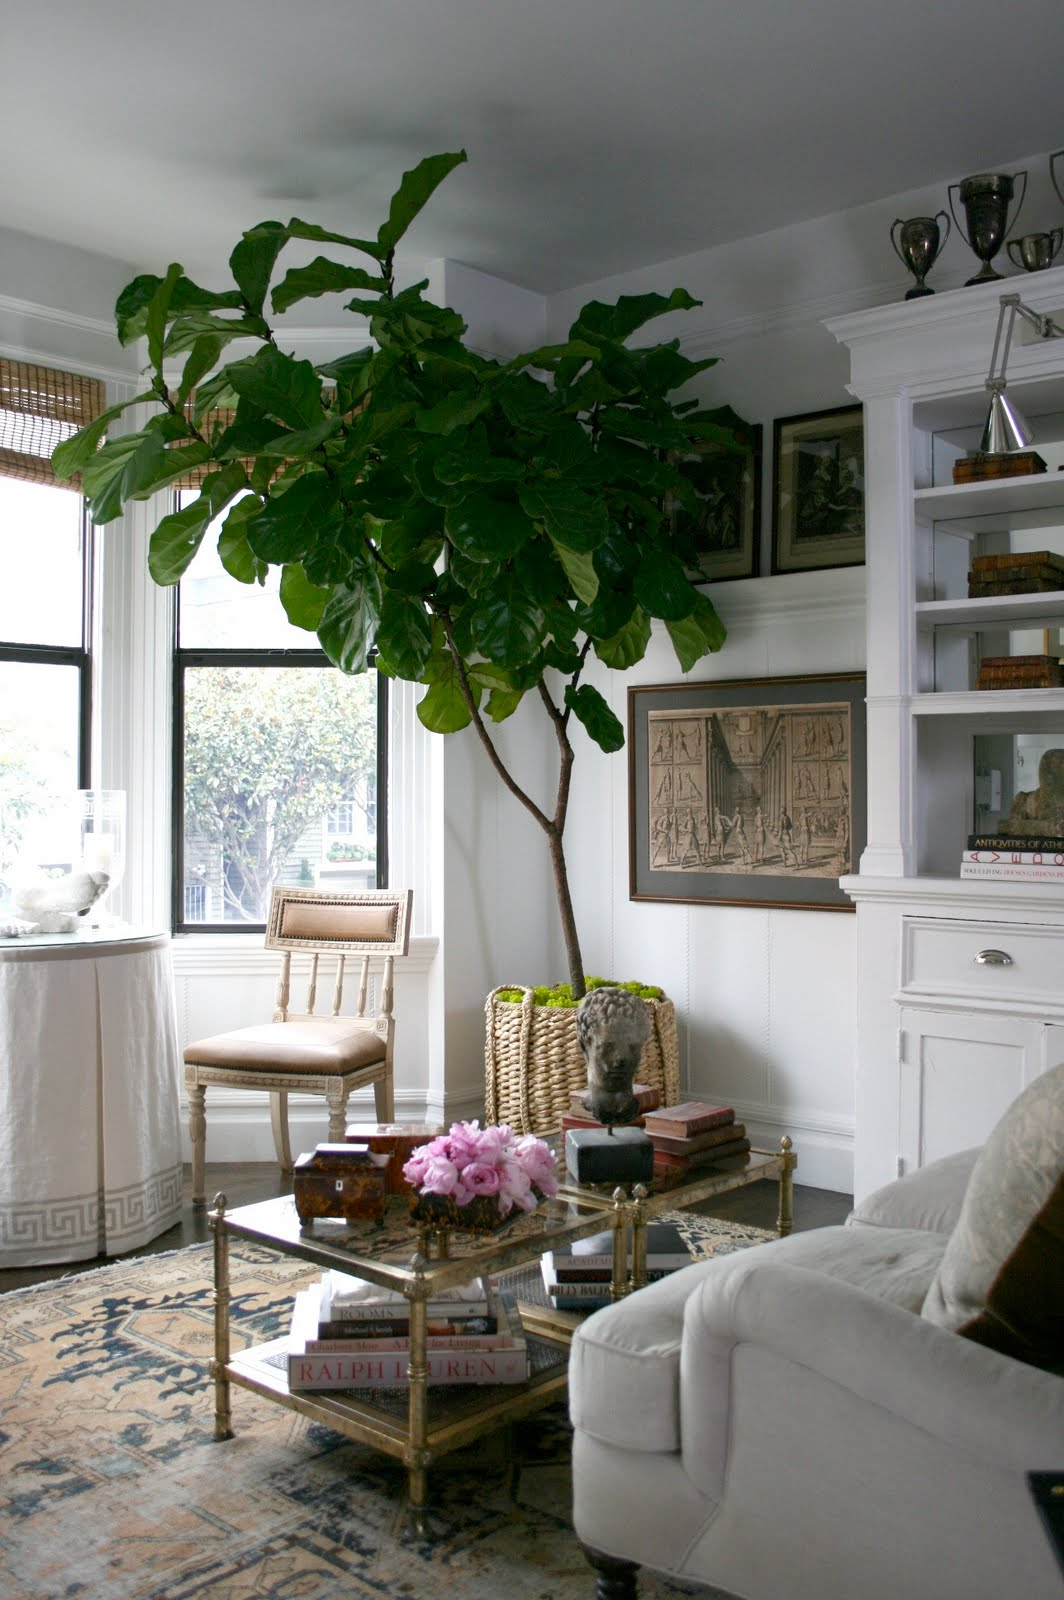 My Pear Tree House: A hankering for an inside tree